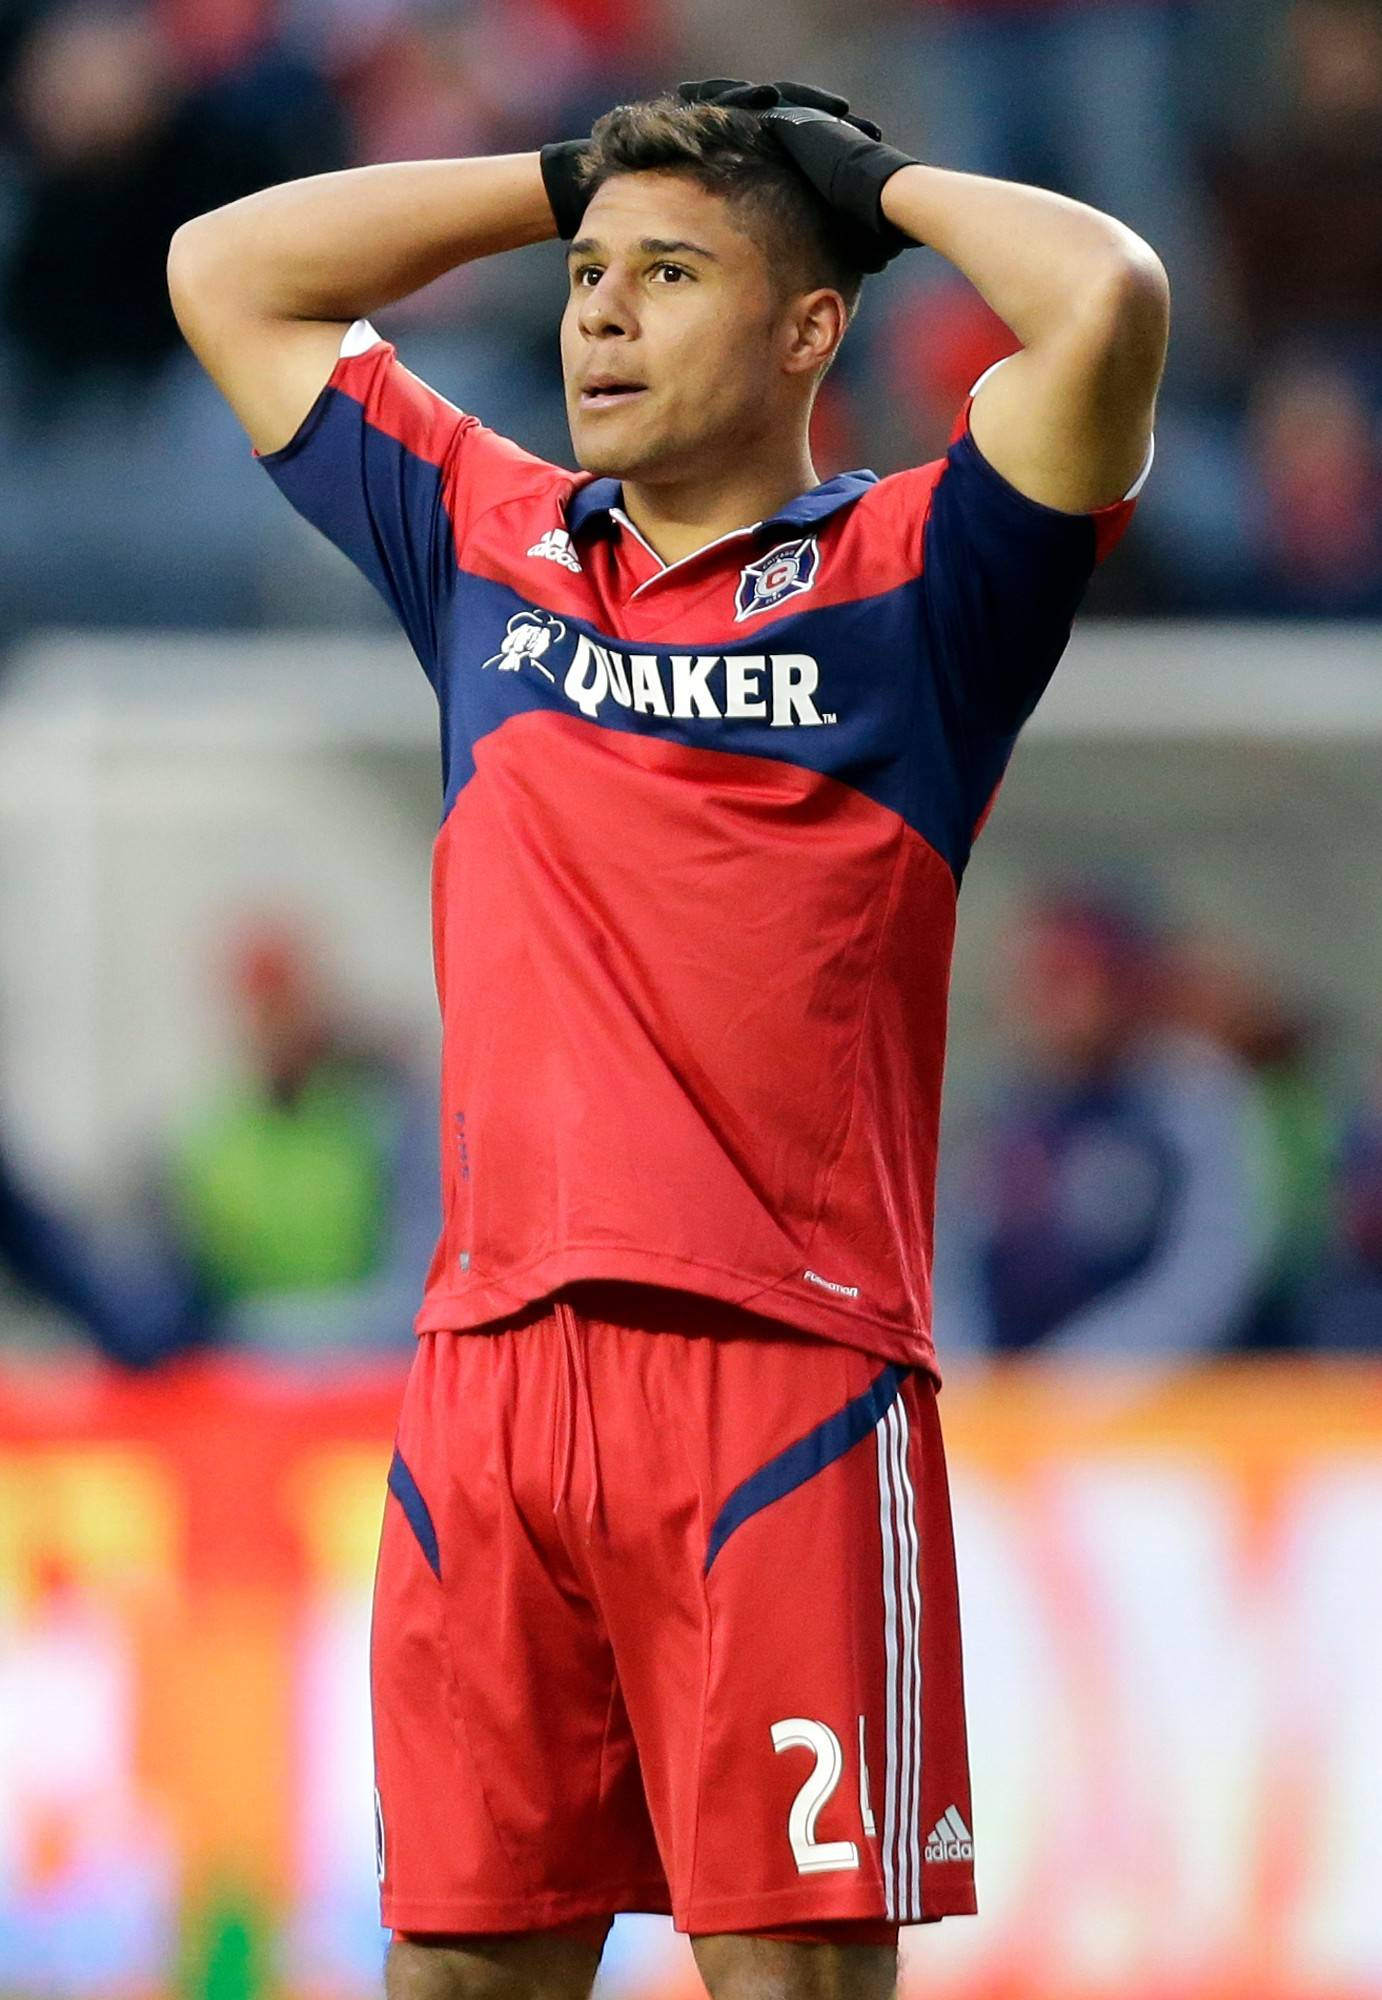 Chicago Fire forward Quincy Amarikwa reacts as he checks the scoreboard during the second half of an MLS match against Chivas USA at Toyota Park in Bridgeview last March. The Fire lost 4-1.